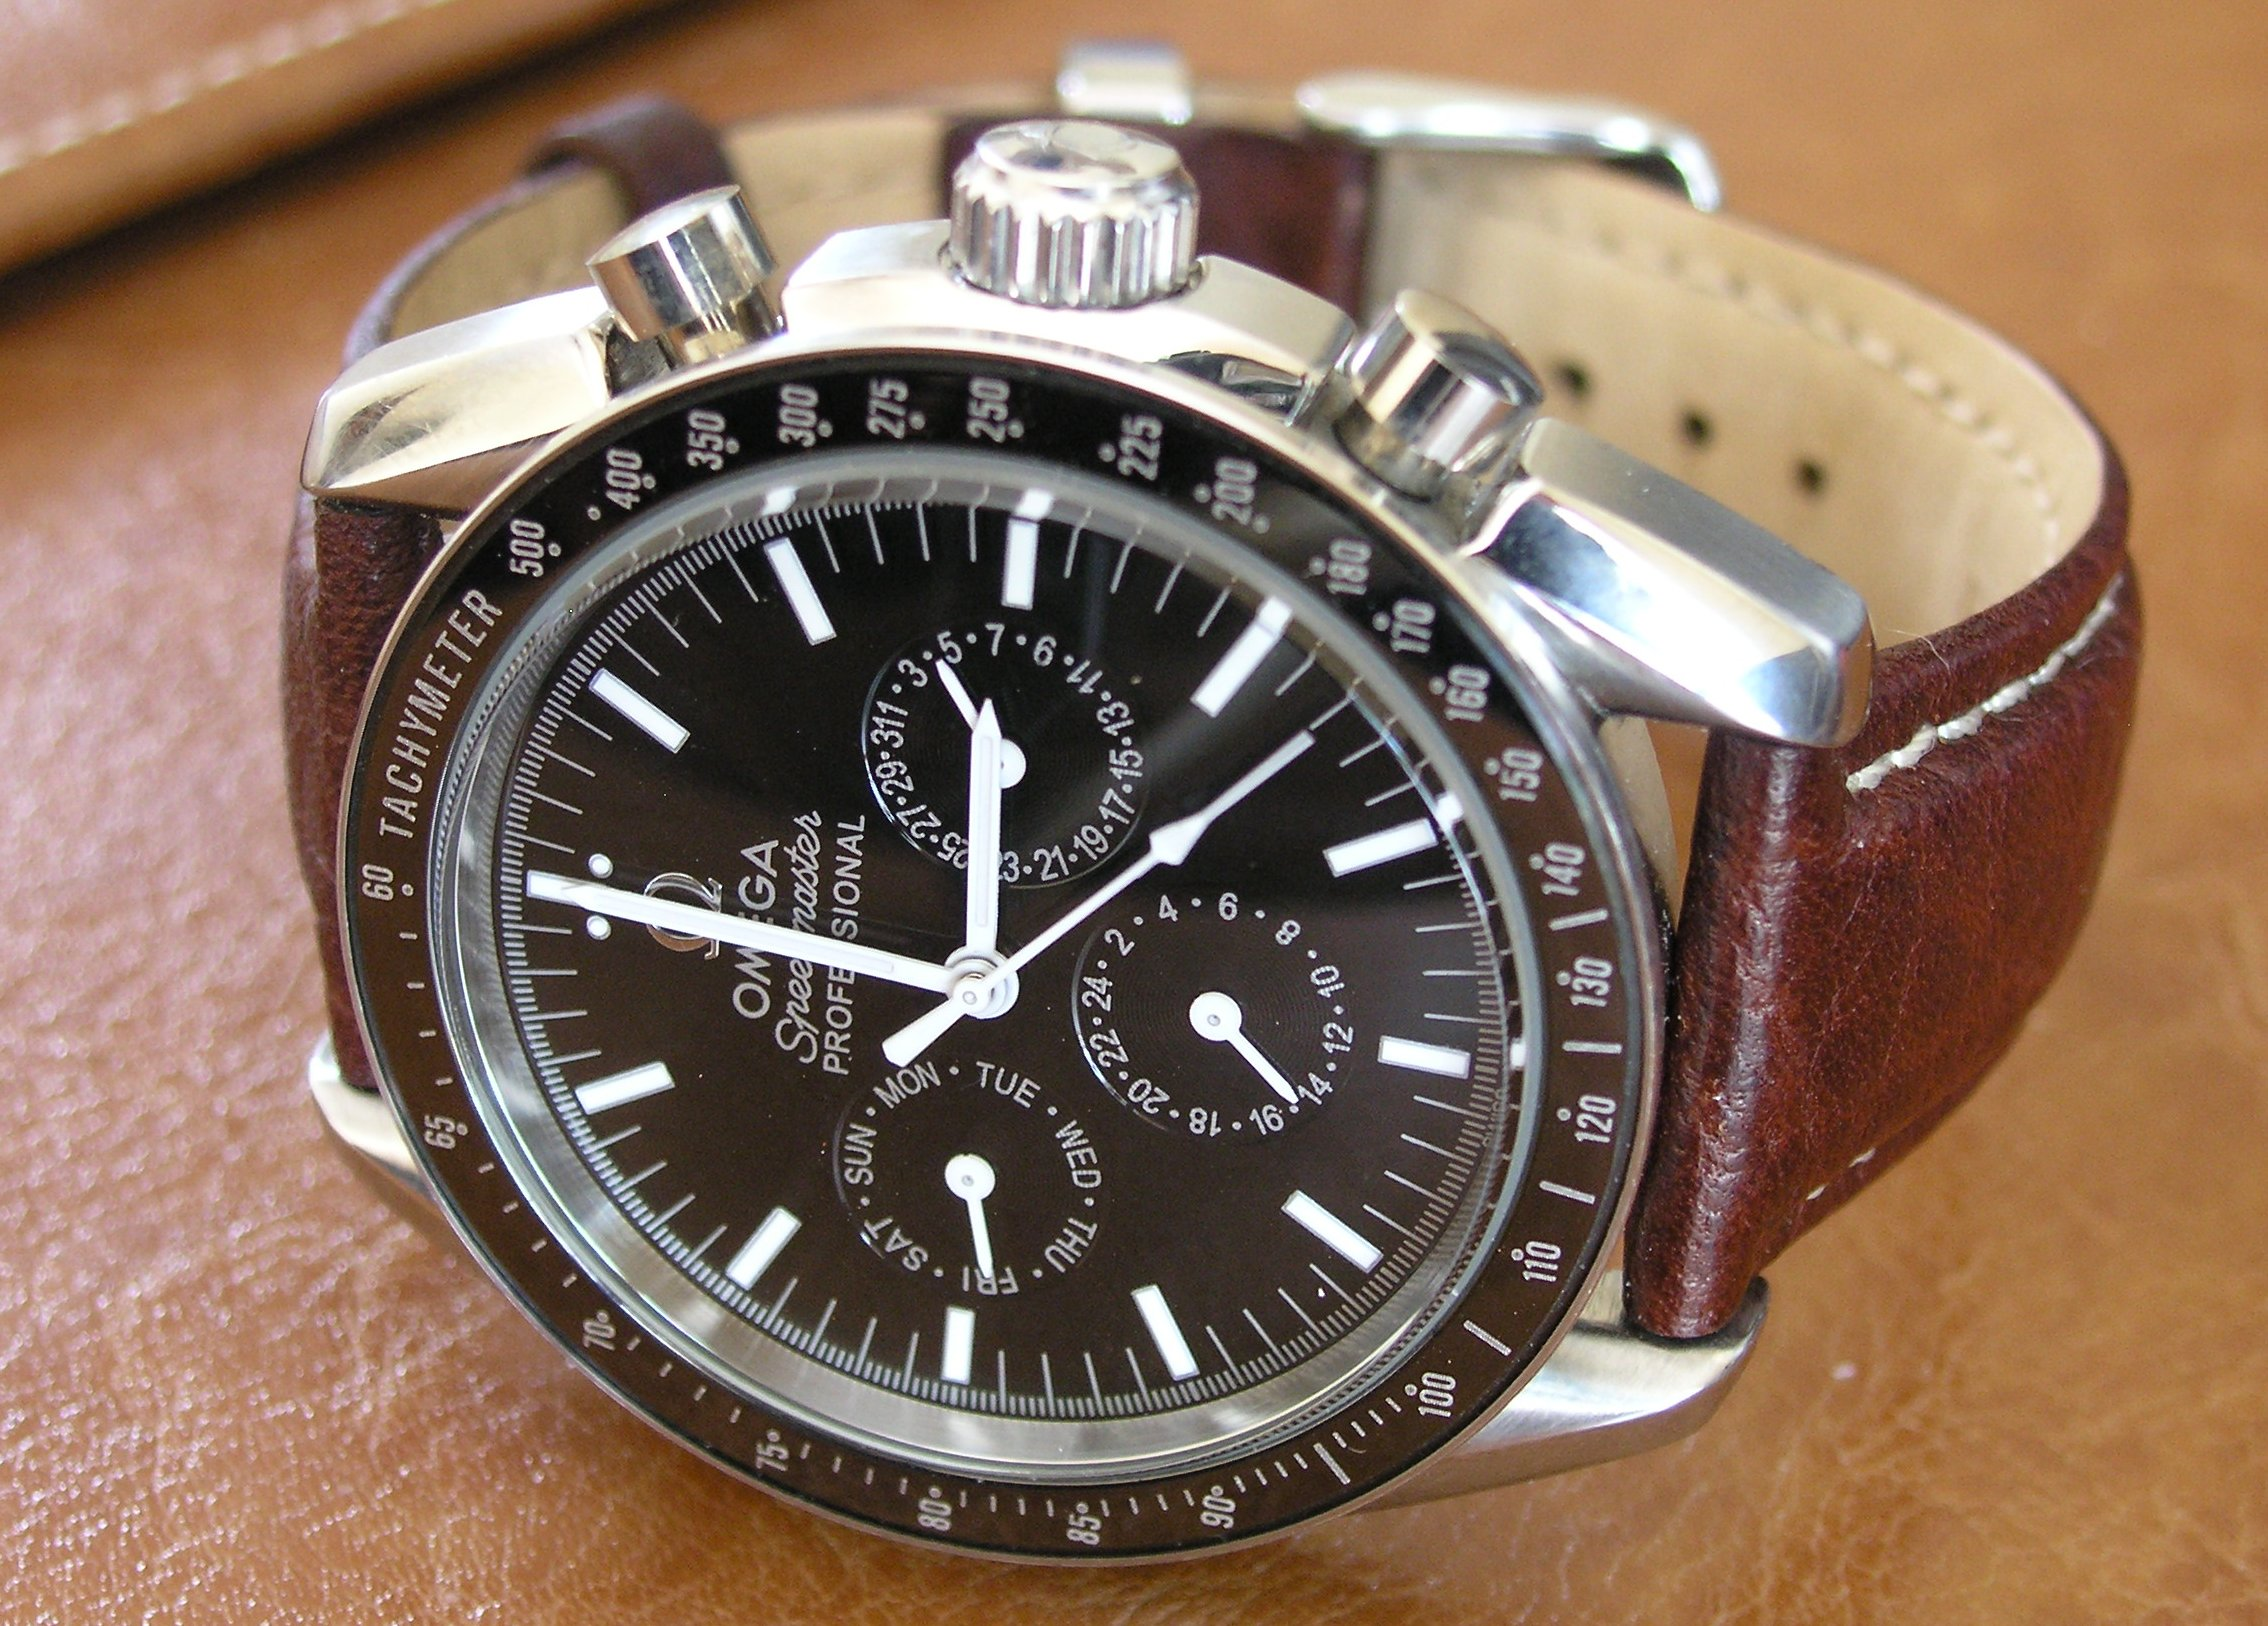 Replica Watches Online: Omega speedmaster replica in Australia